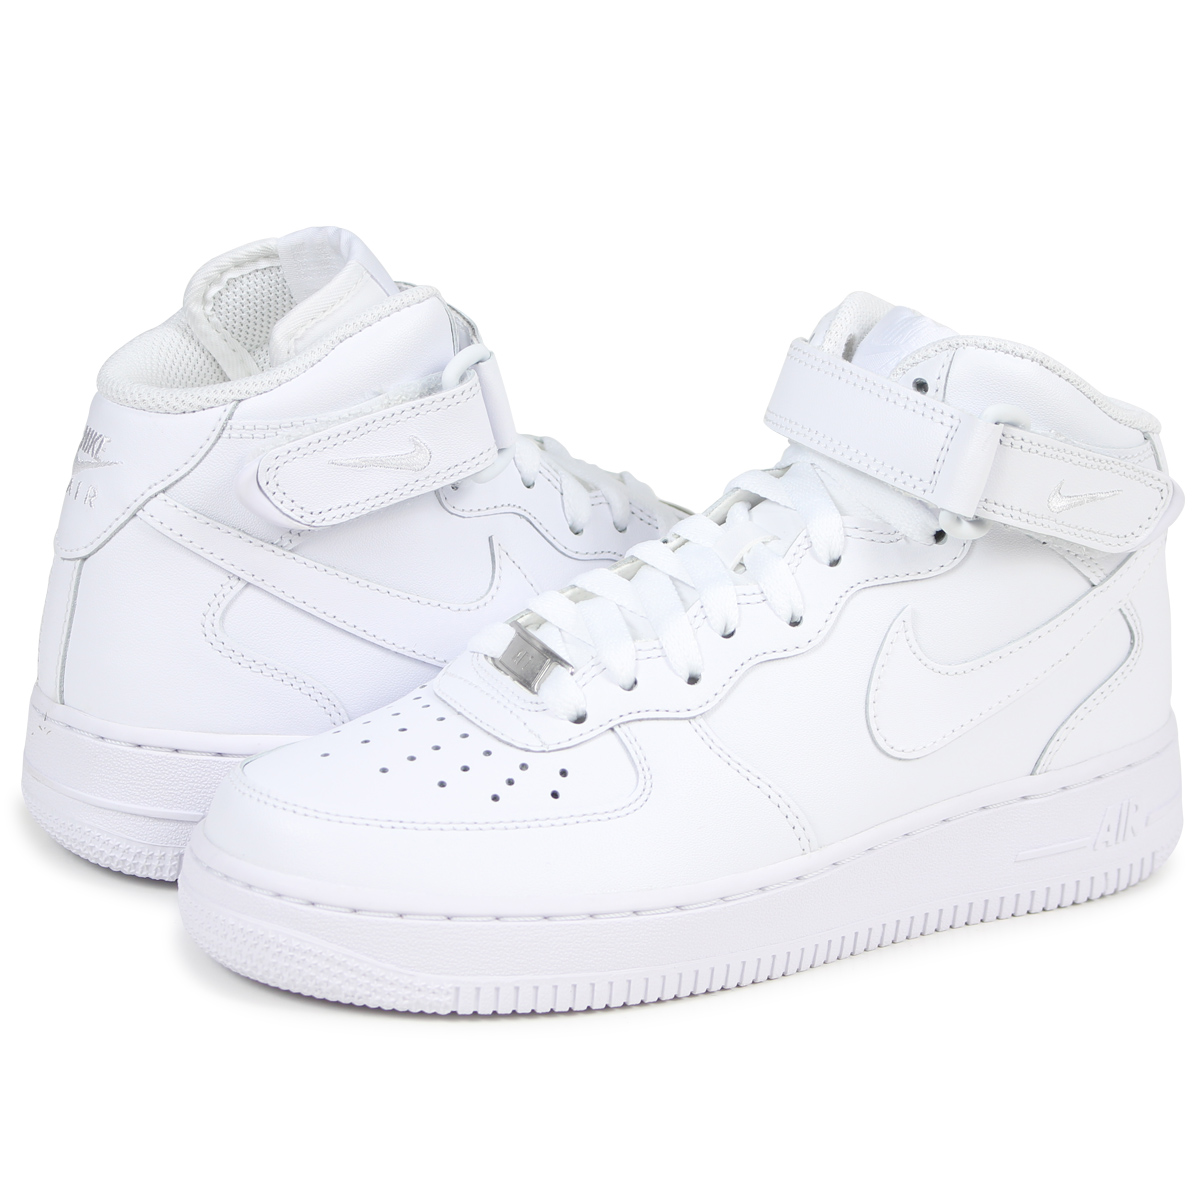 NIKE Nike Air Force sneakers Womens WMNS AIR FORCE 1 MID 07 air force 1 mid  366731 - 100 men s shoes white  8 2 Add in stock  25269e34d